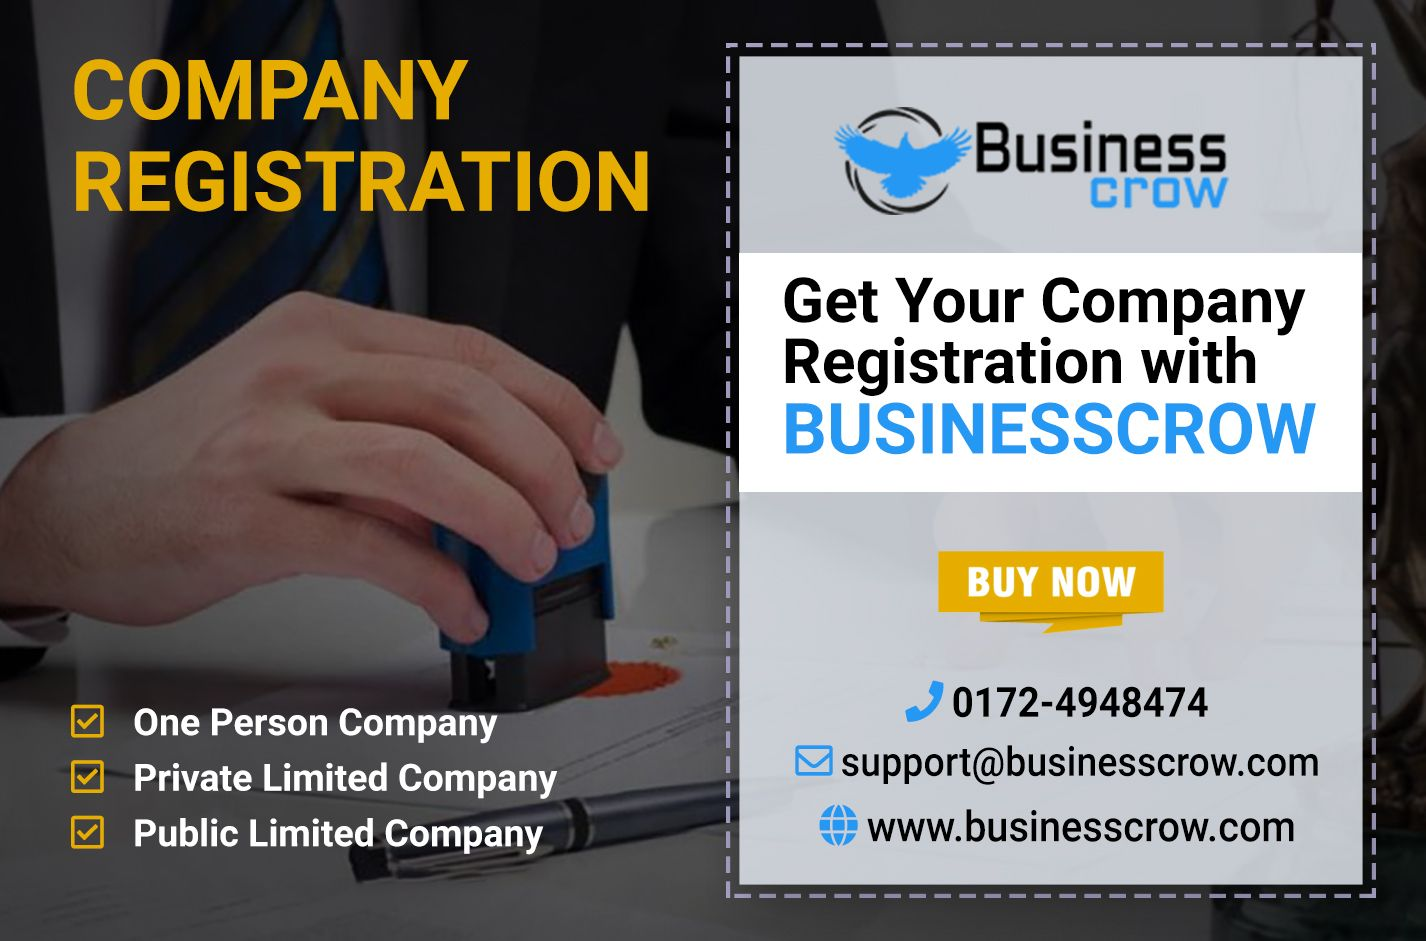 Now, Company Registration is so easy with BusinessCrow. It